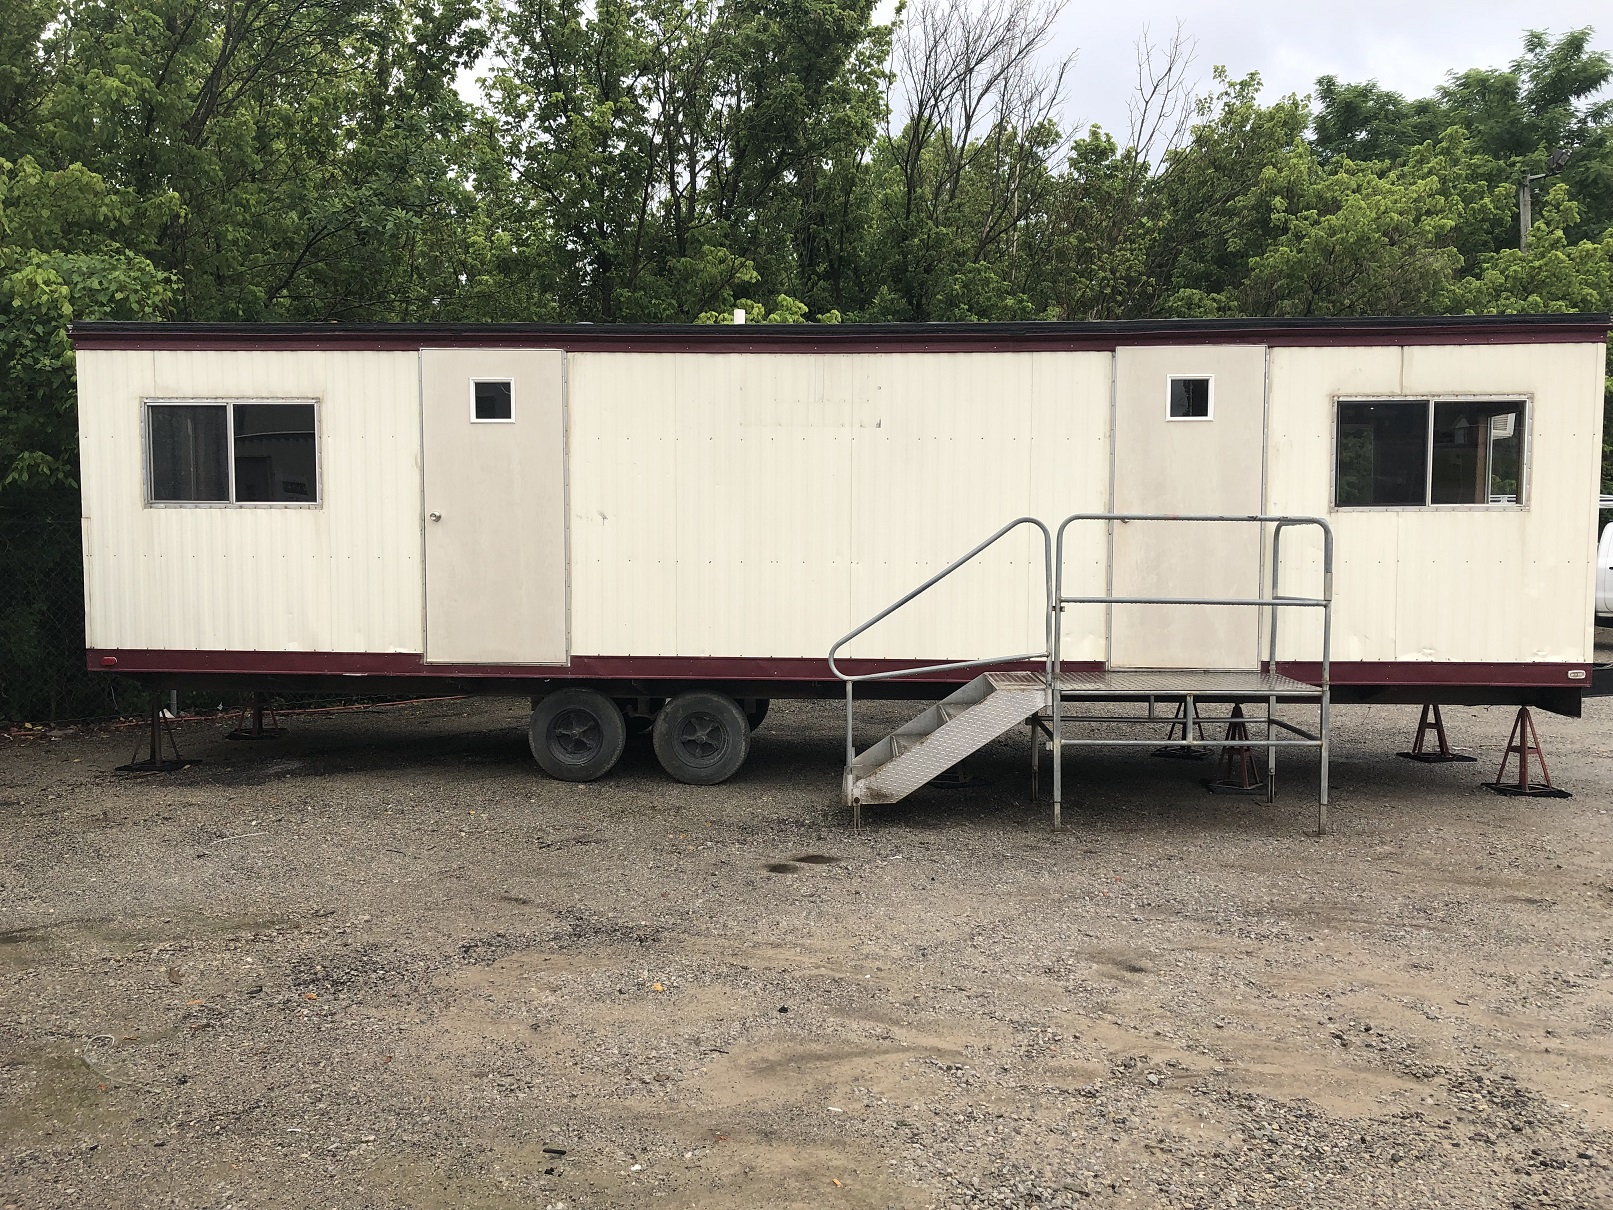 36'x8' used mobile office for sale in Louisville, KY - AMO-351961-7